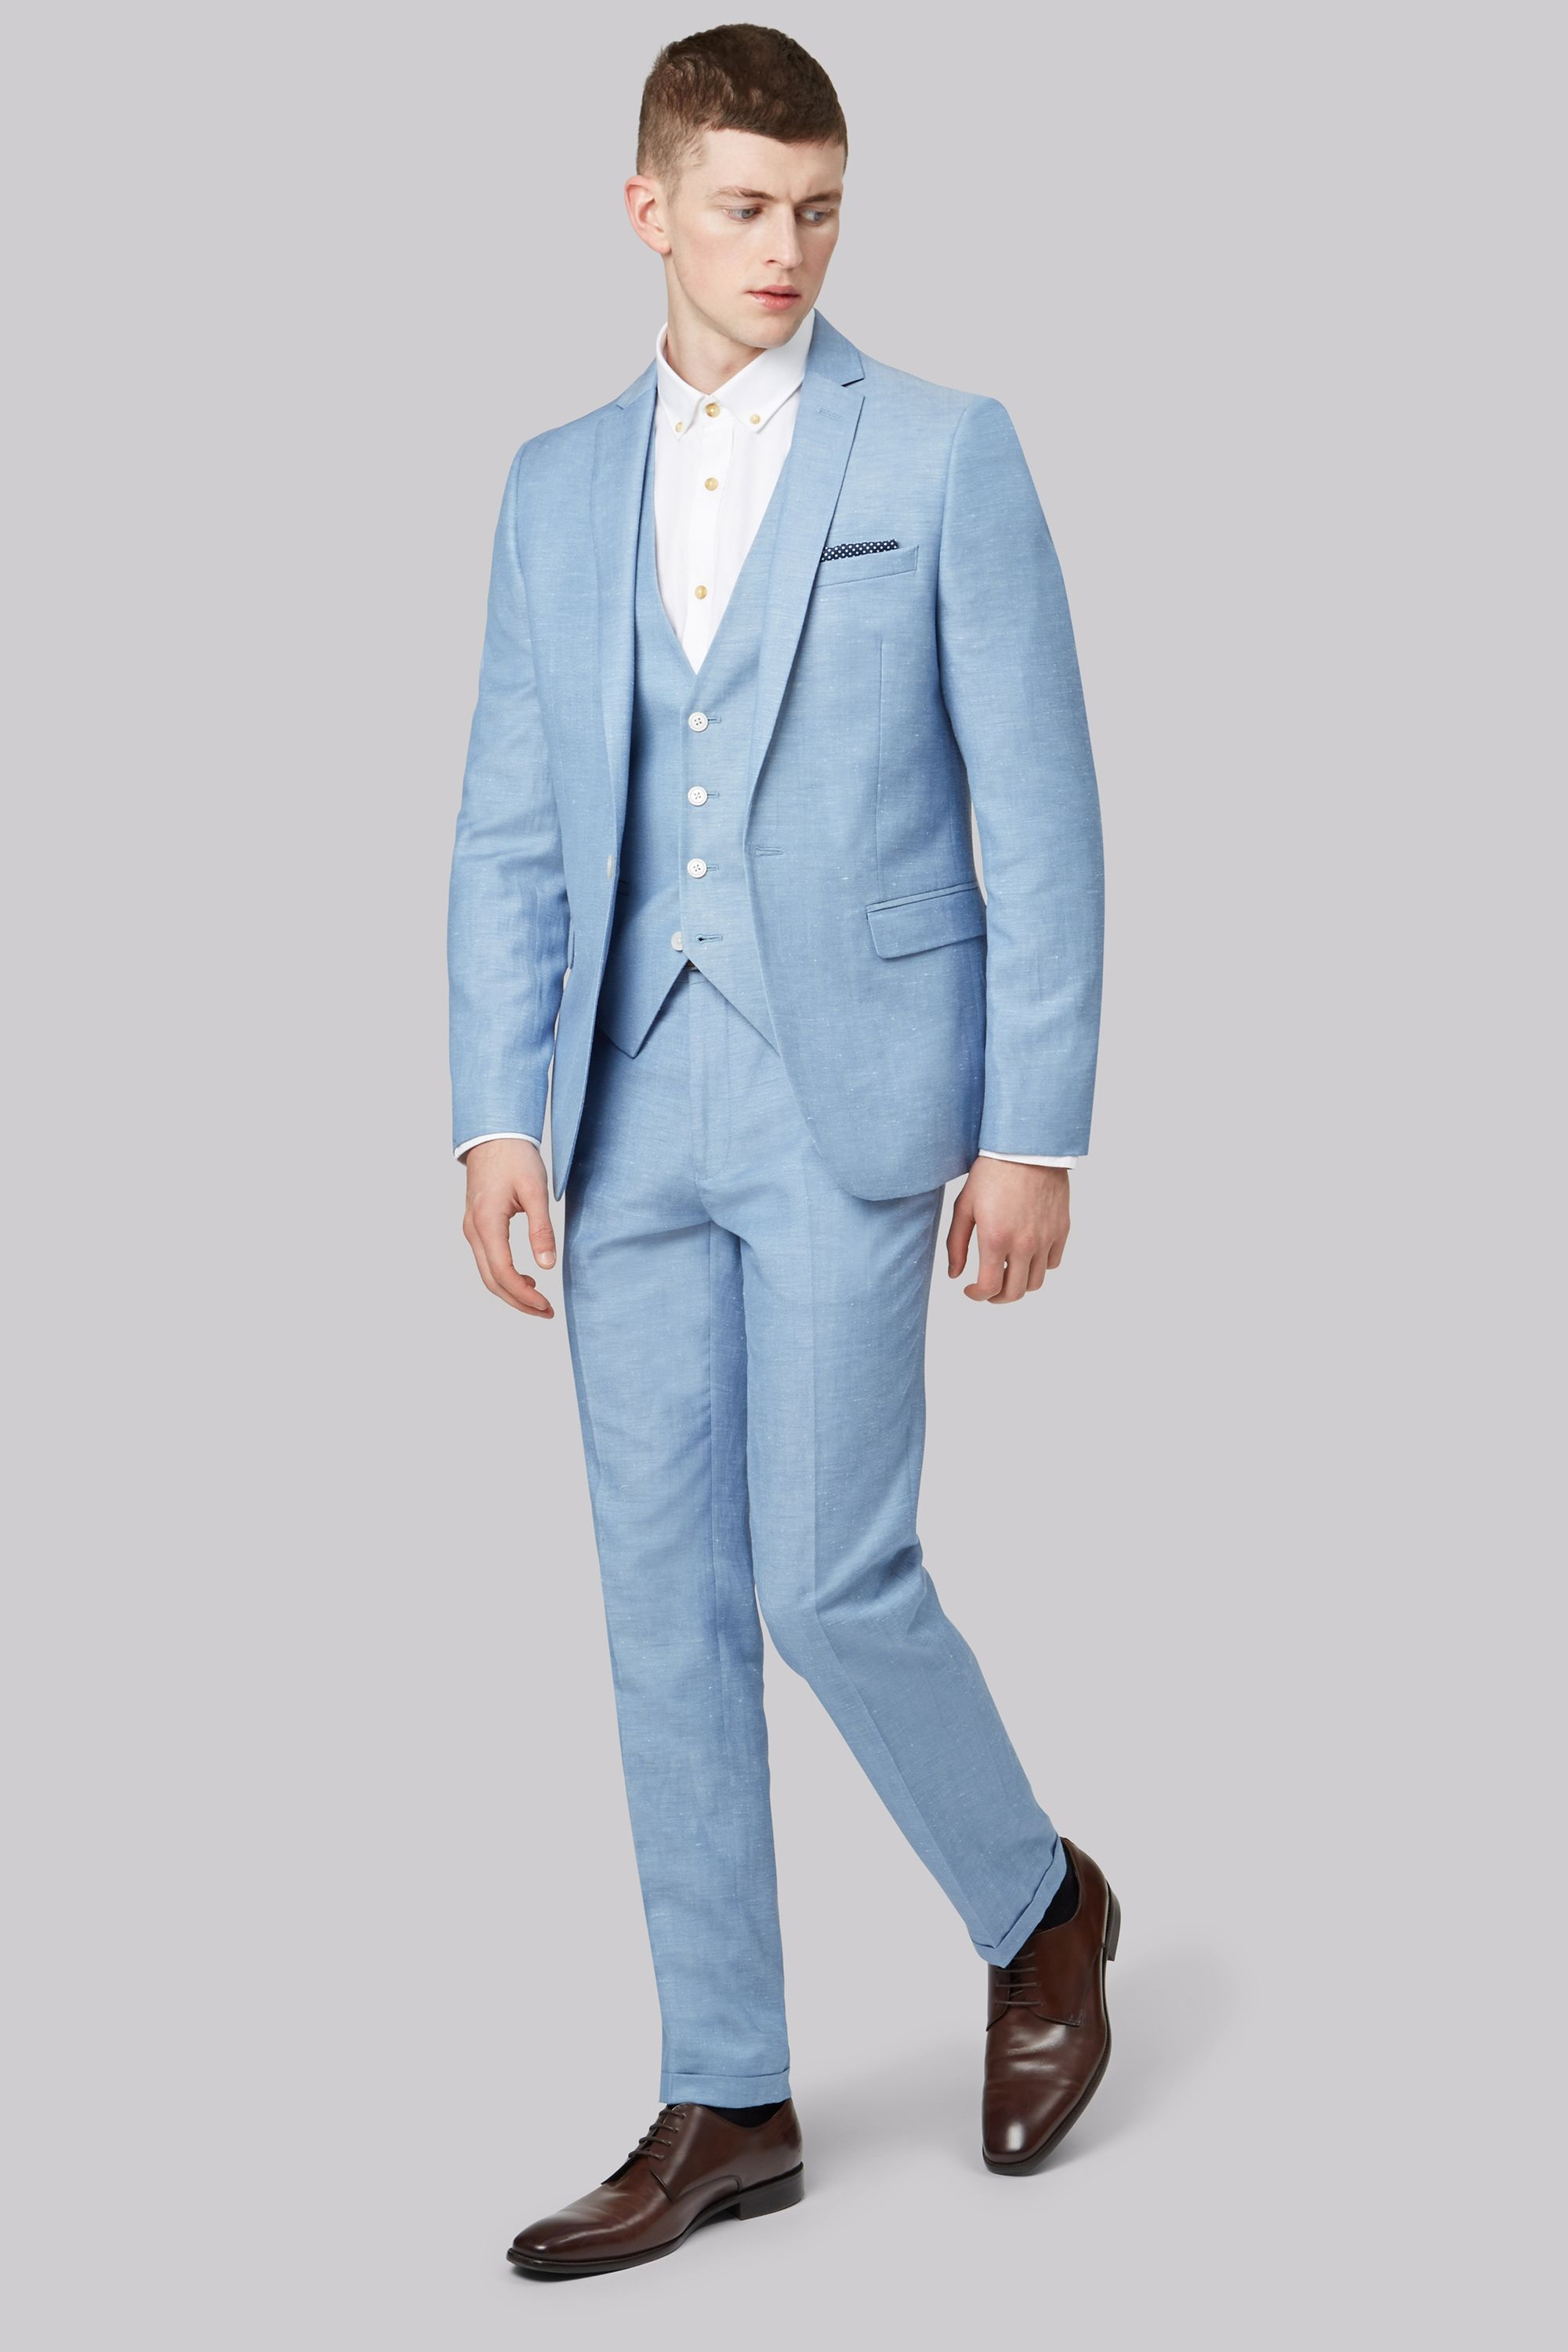 Moss London Slim Fit Sky Blue Linen Jacket | for the wedding ...